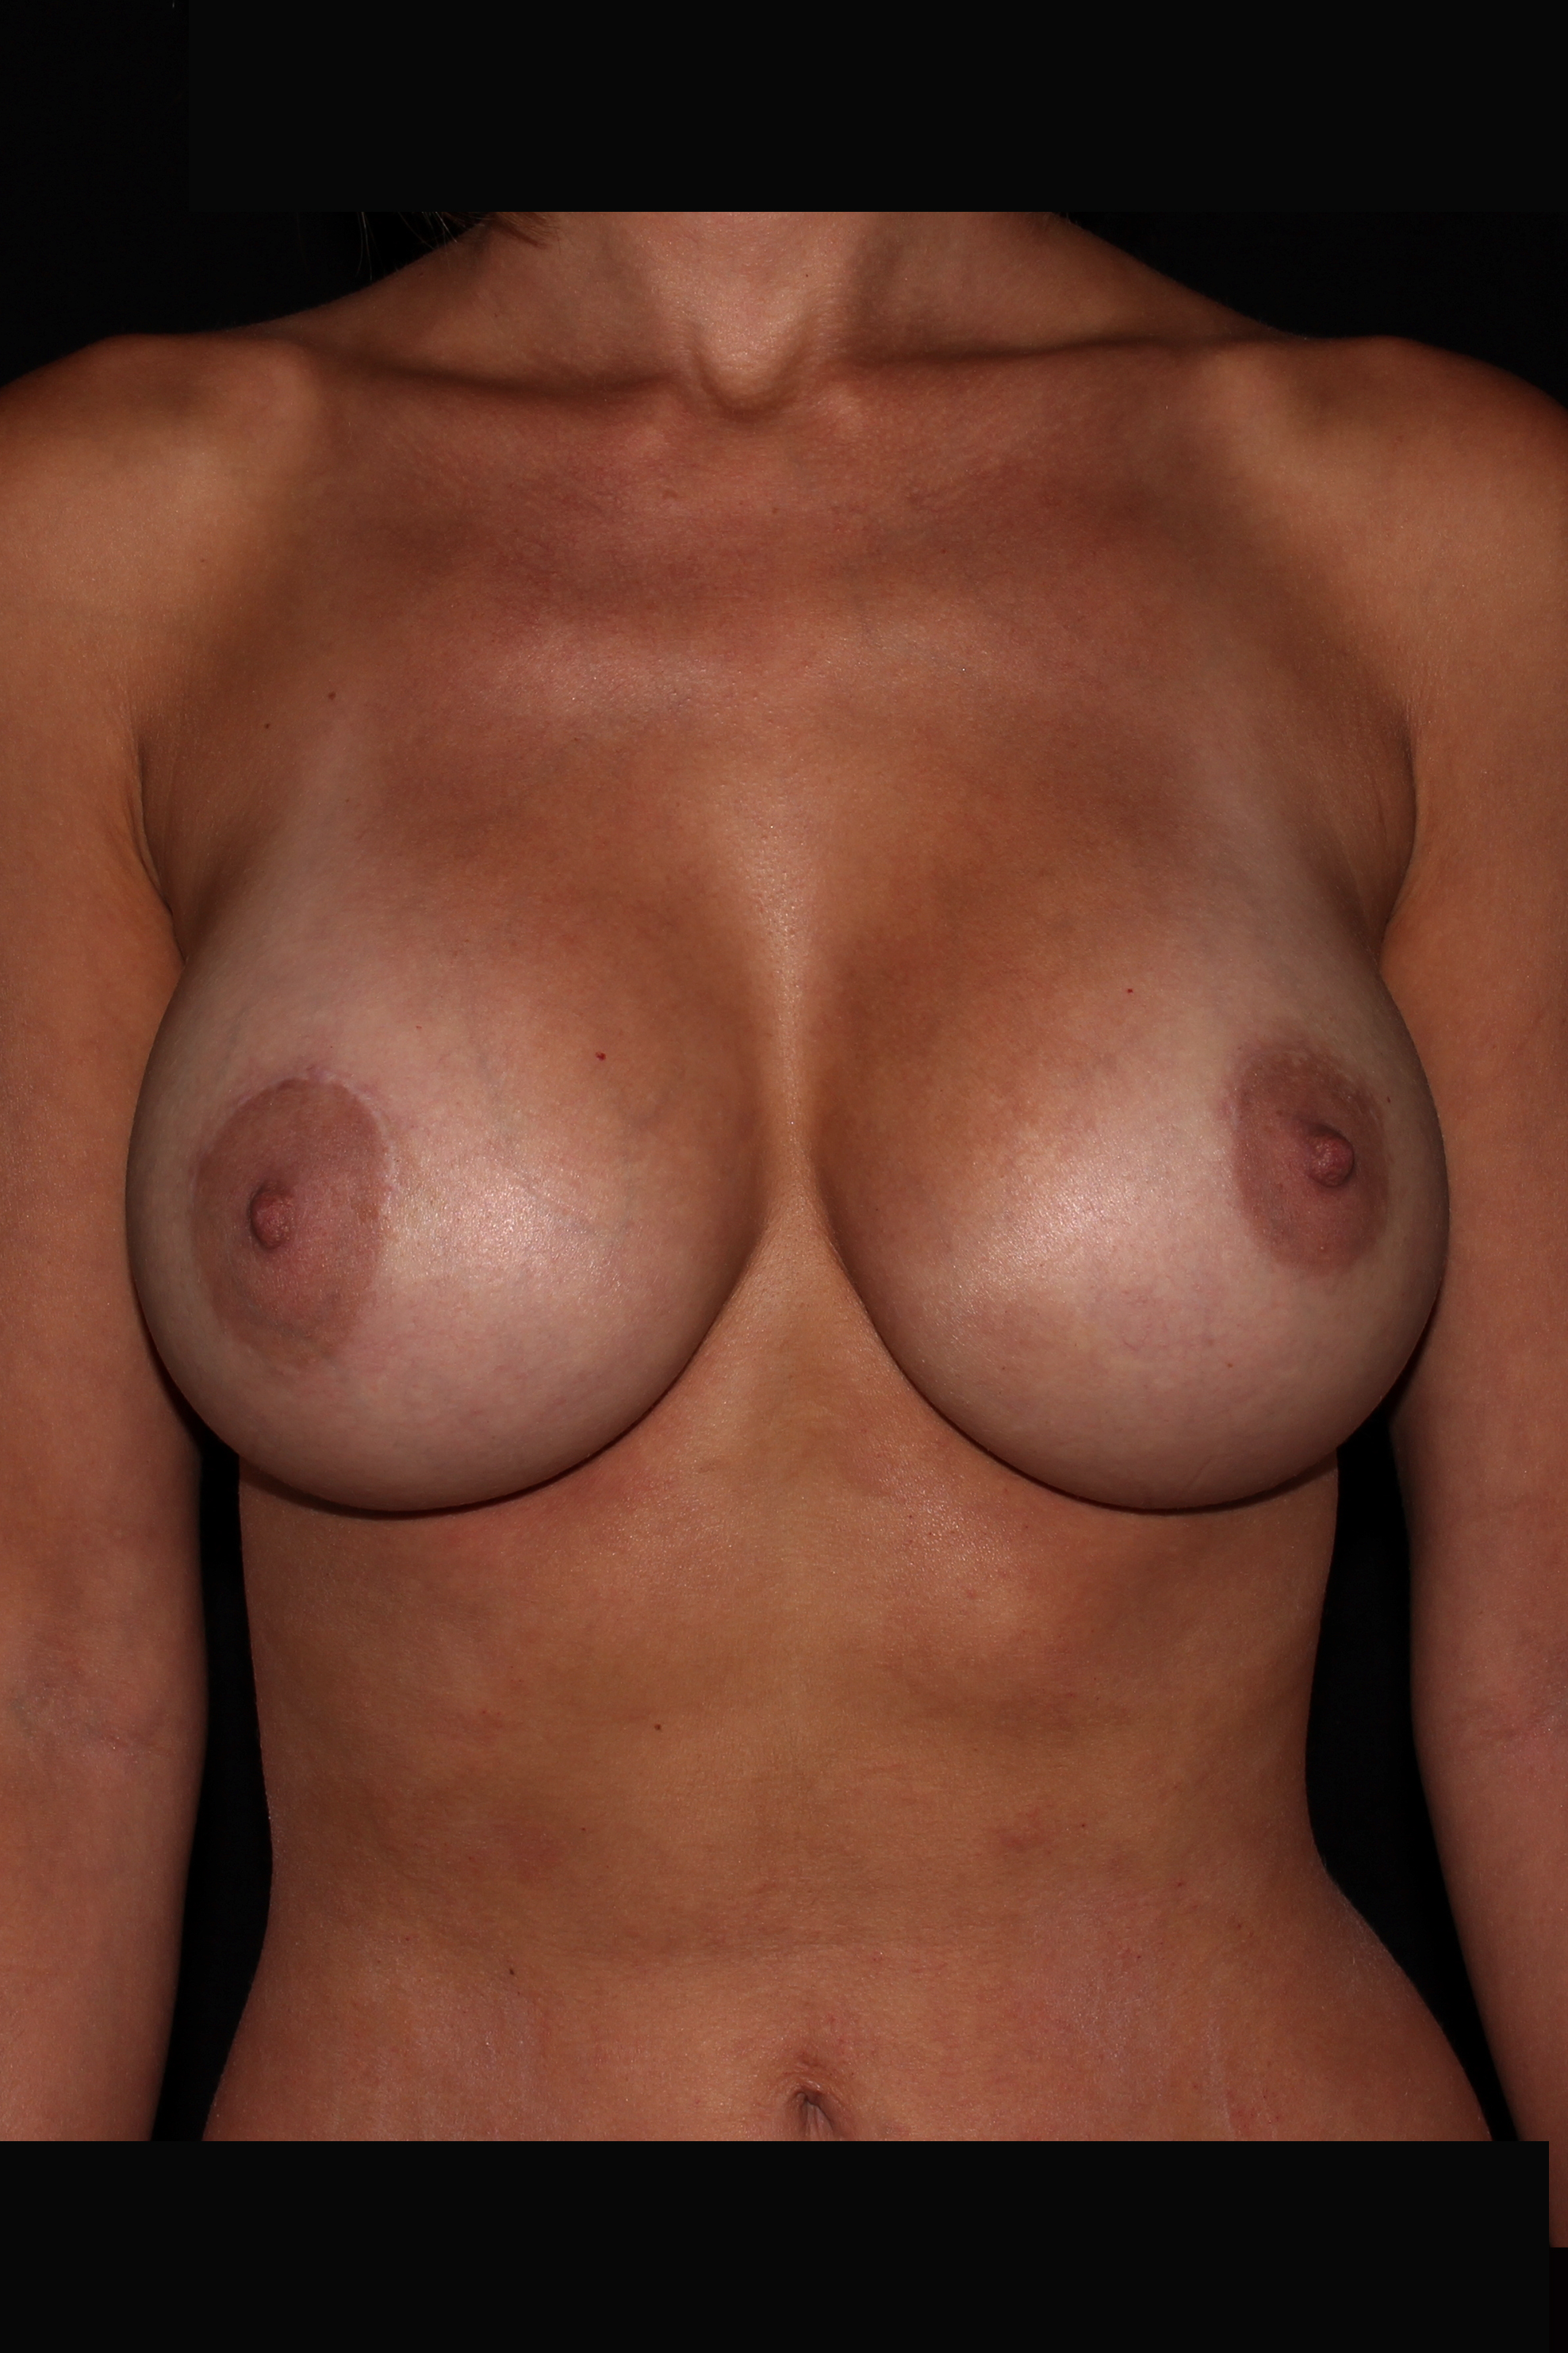 After Breast Augmentation - 455cc moderate profile silicone implants